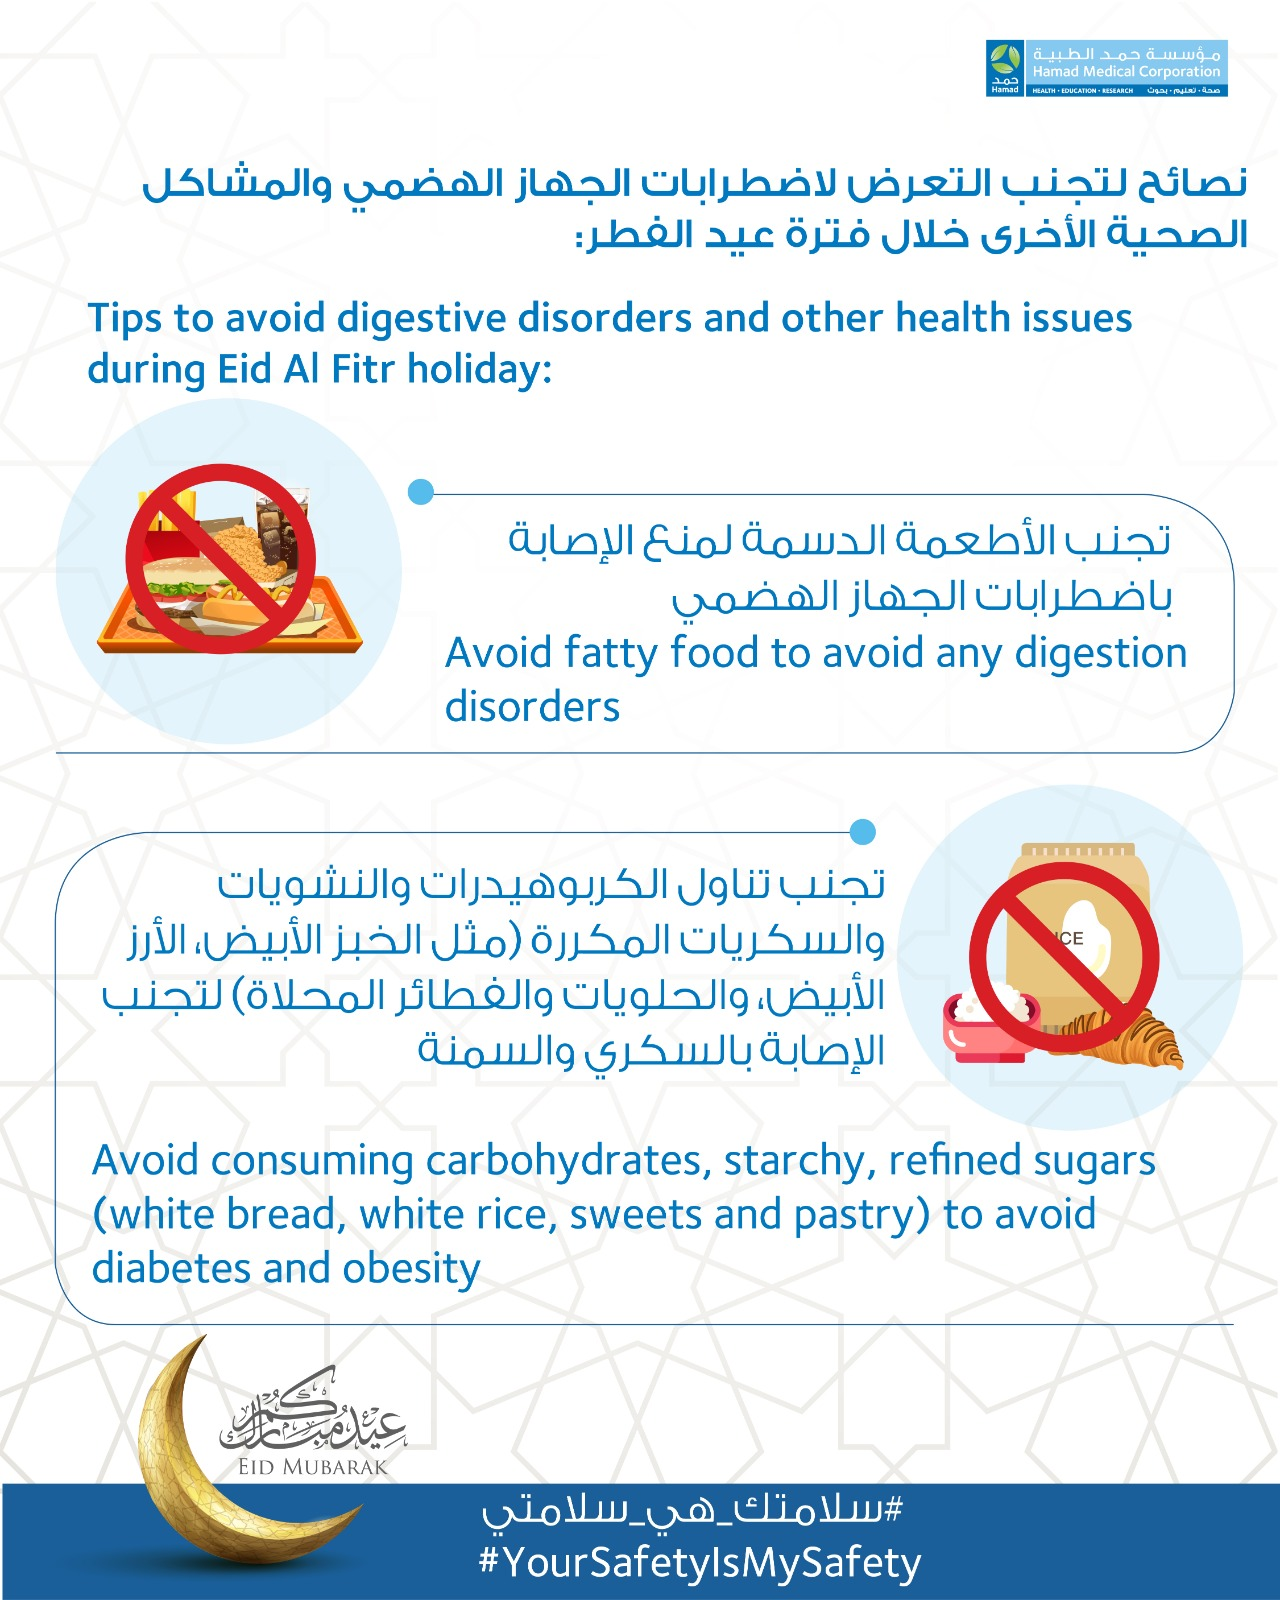 Tips to avoid digestive disorders and other health issues during Eid Al Fitr holiday